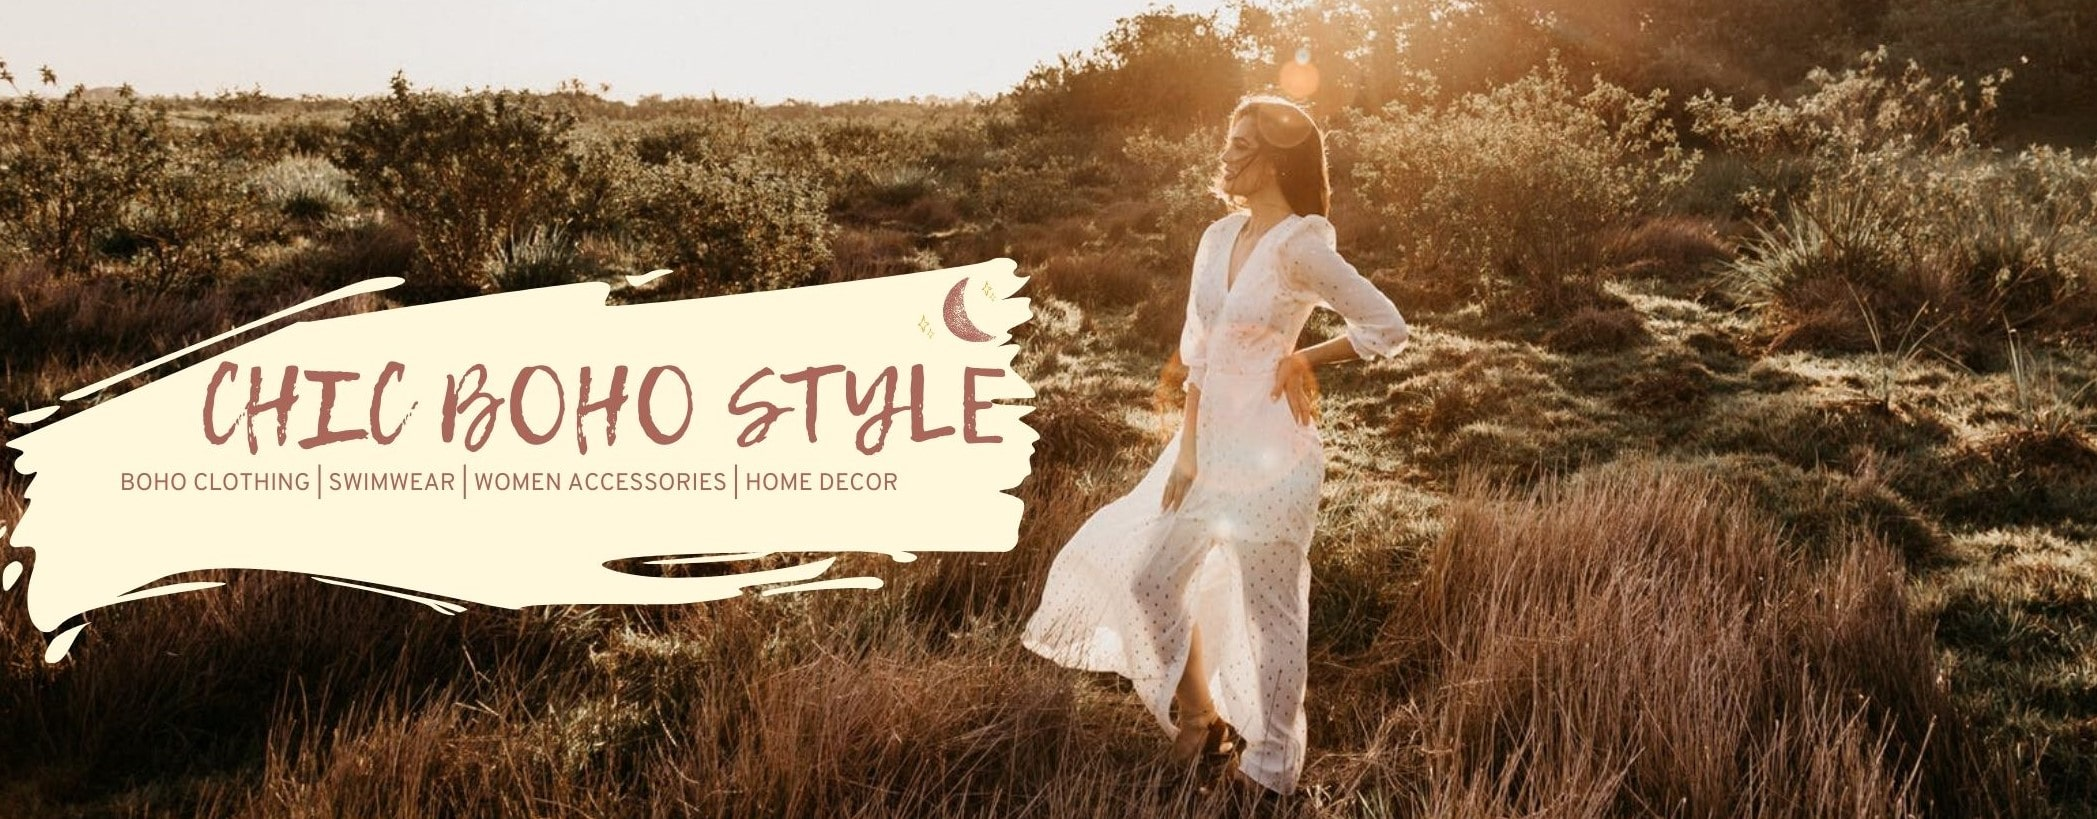 Boho Clothing-About-Us-Chic Boho Style